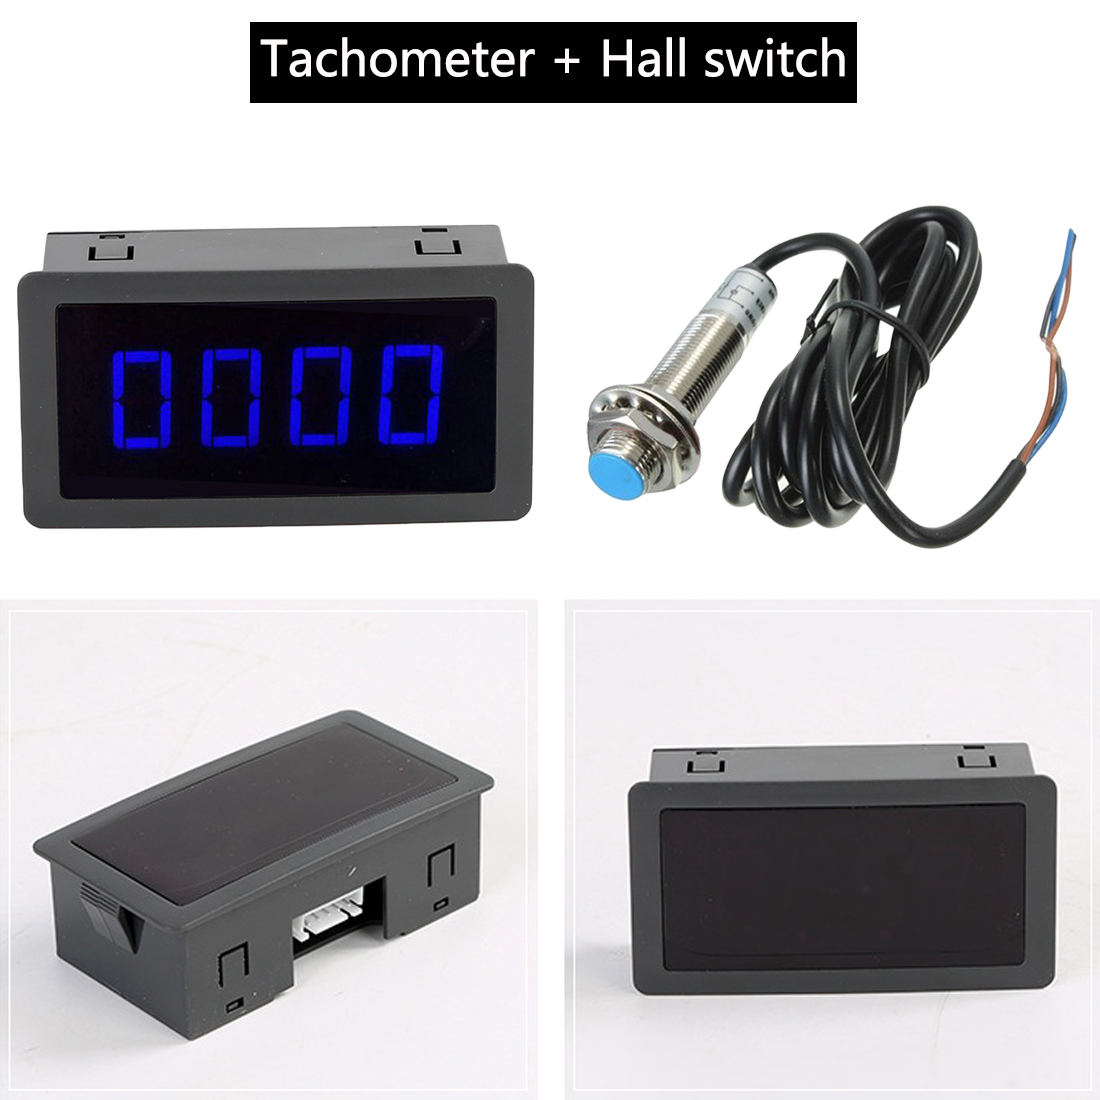 DC 8-15V Hall Proximity Switch Sensor NPN+ 4 Digital Red Green Blue LED Tachometer RPM Speed Meter 5-9999RPM